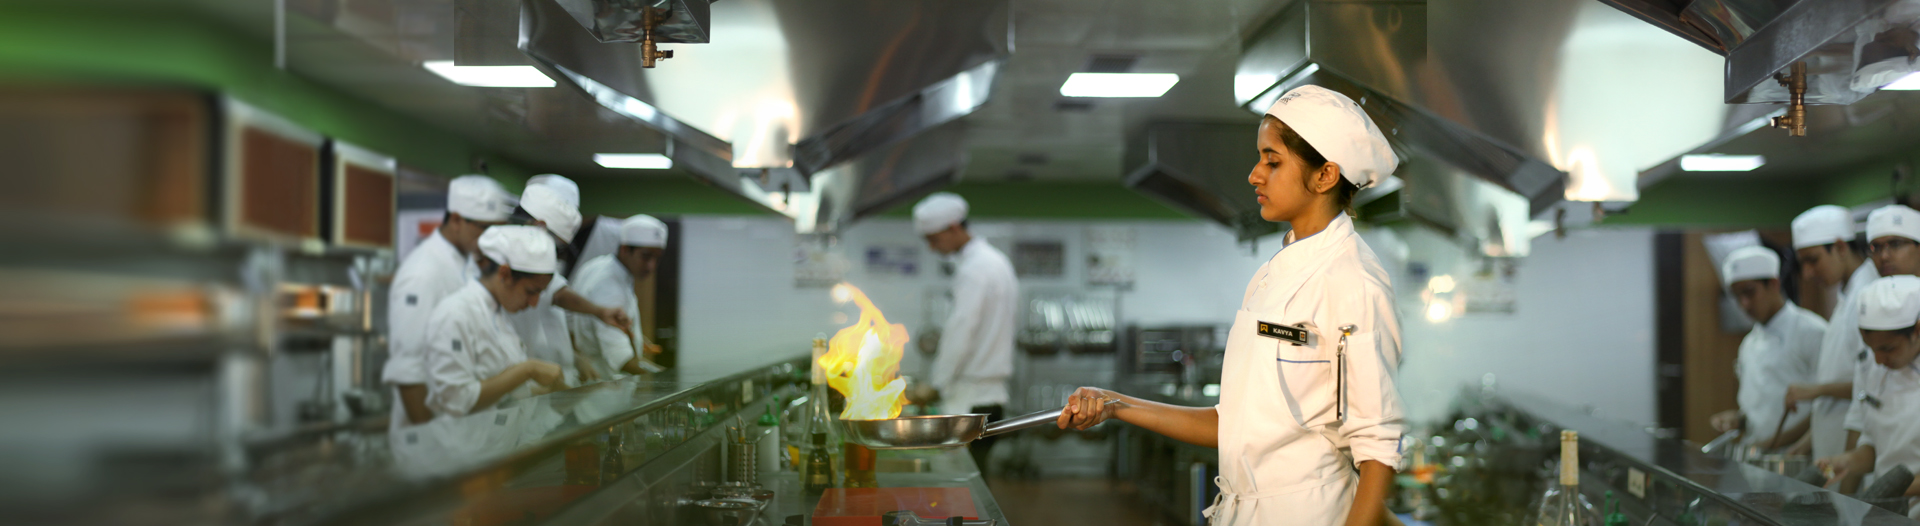 culinary_Courses_to_become_chef_india